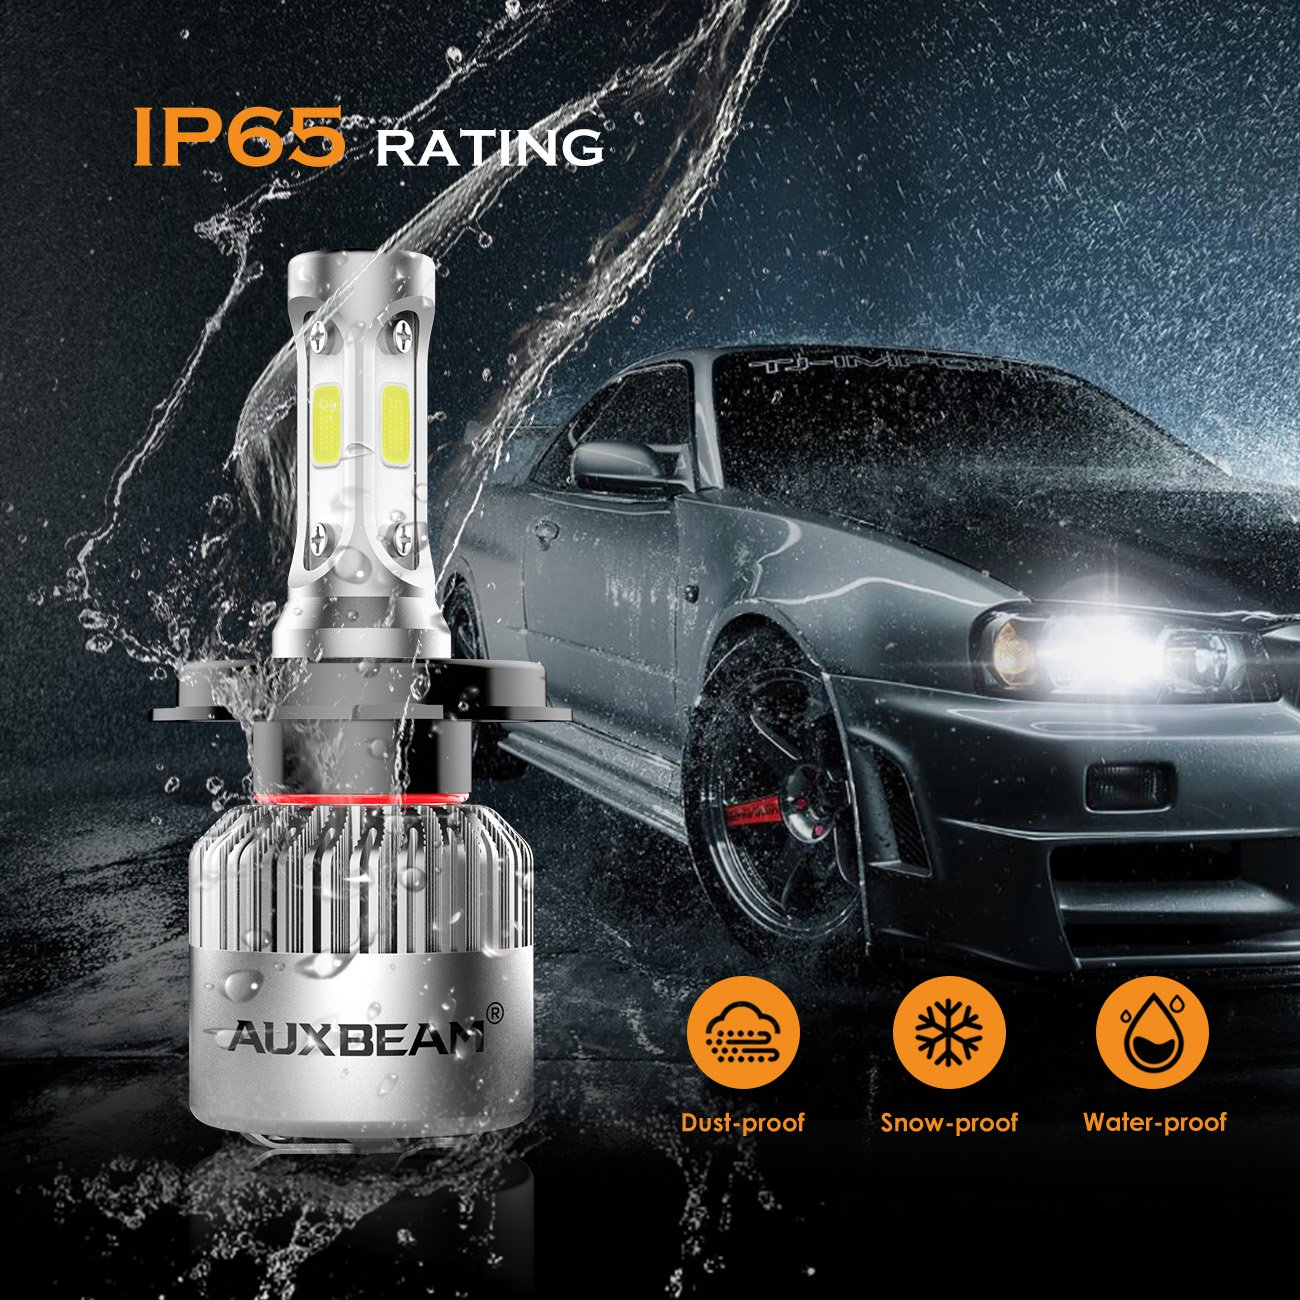 Auxbeam Led Headlight Bulbs F S2 Series Headlights With 2 Pcs Of Exciting Scout Crafts 1 Or Headlamp H4 Conversion Kits72w 8000lm Hi Lo Beam Car Motorbike